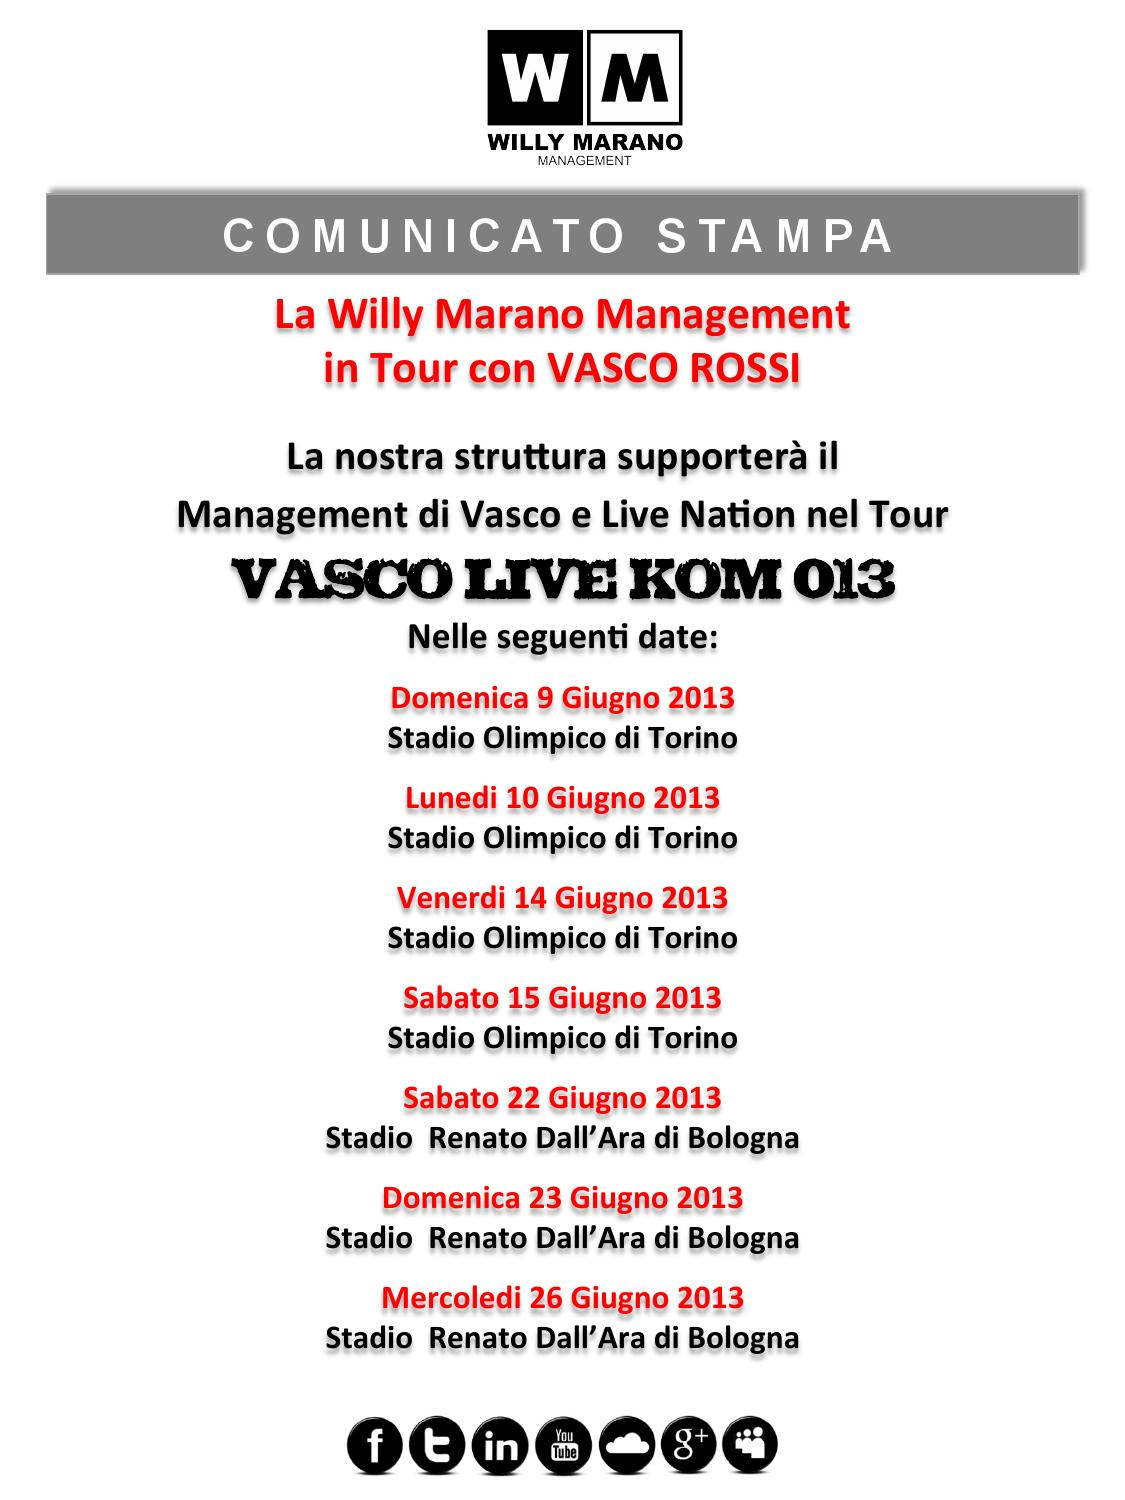 Vasco A Torino Willy Marano Management Al Live Kom 013